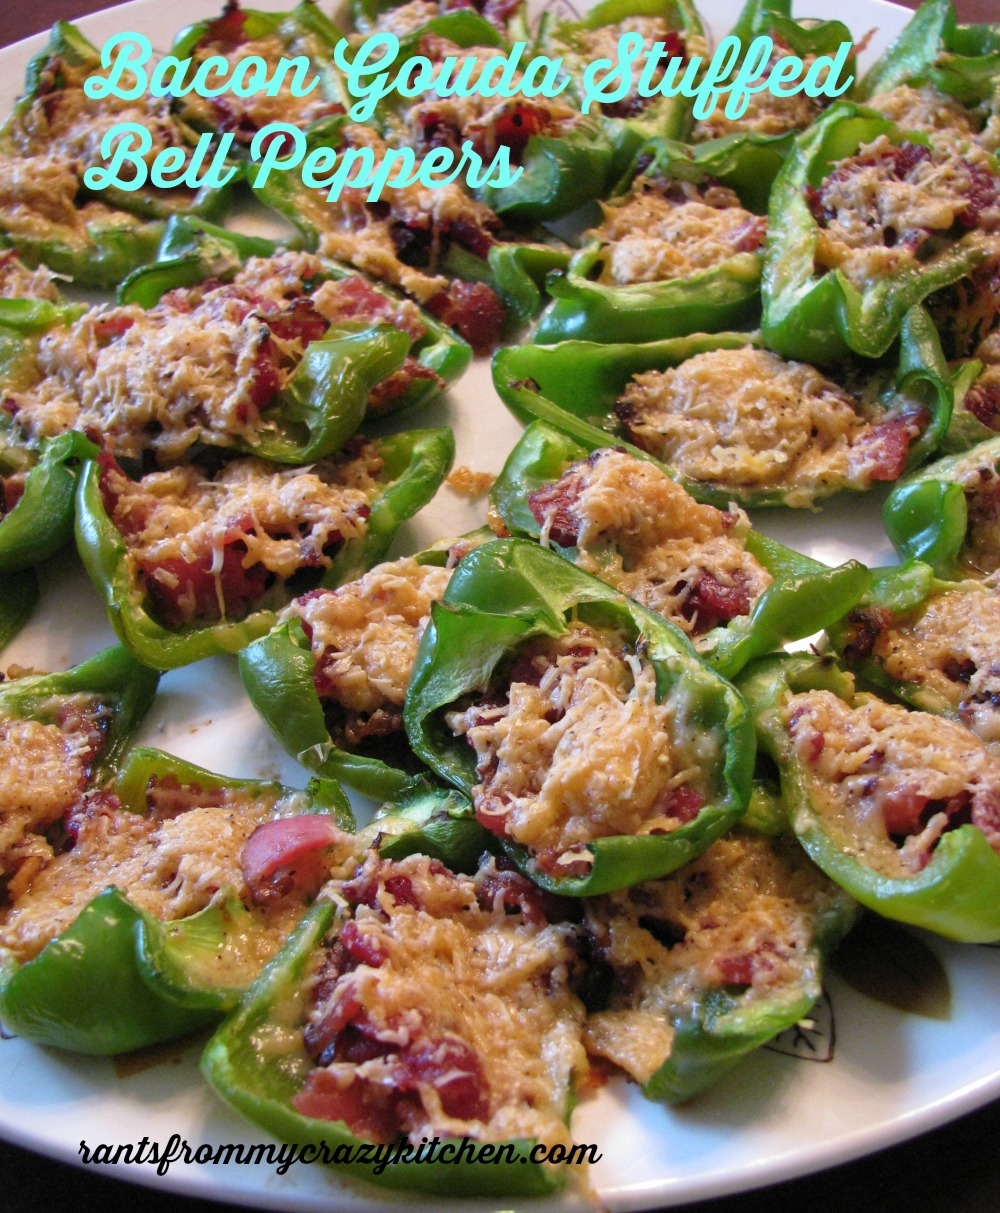 Bacon-Gouda-Stuffed-Bell-Peppers-2